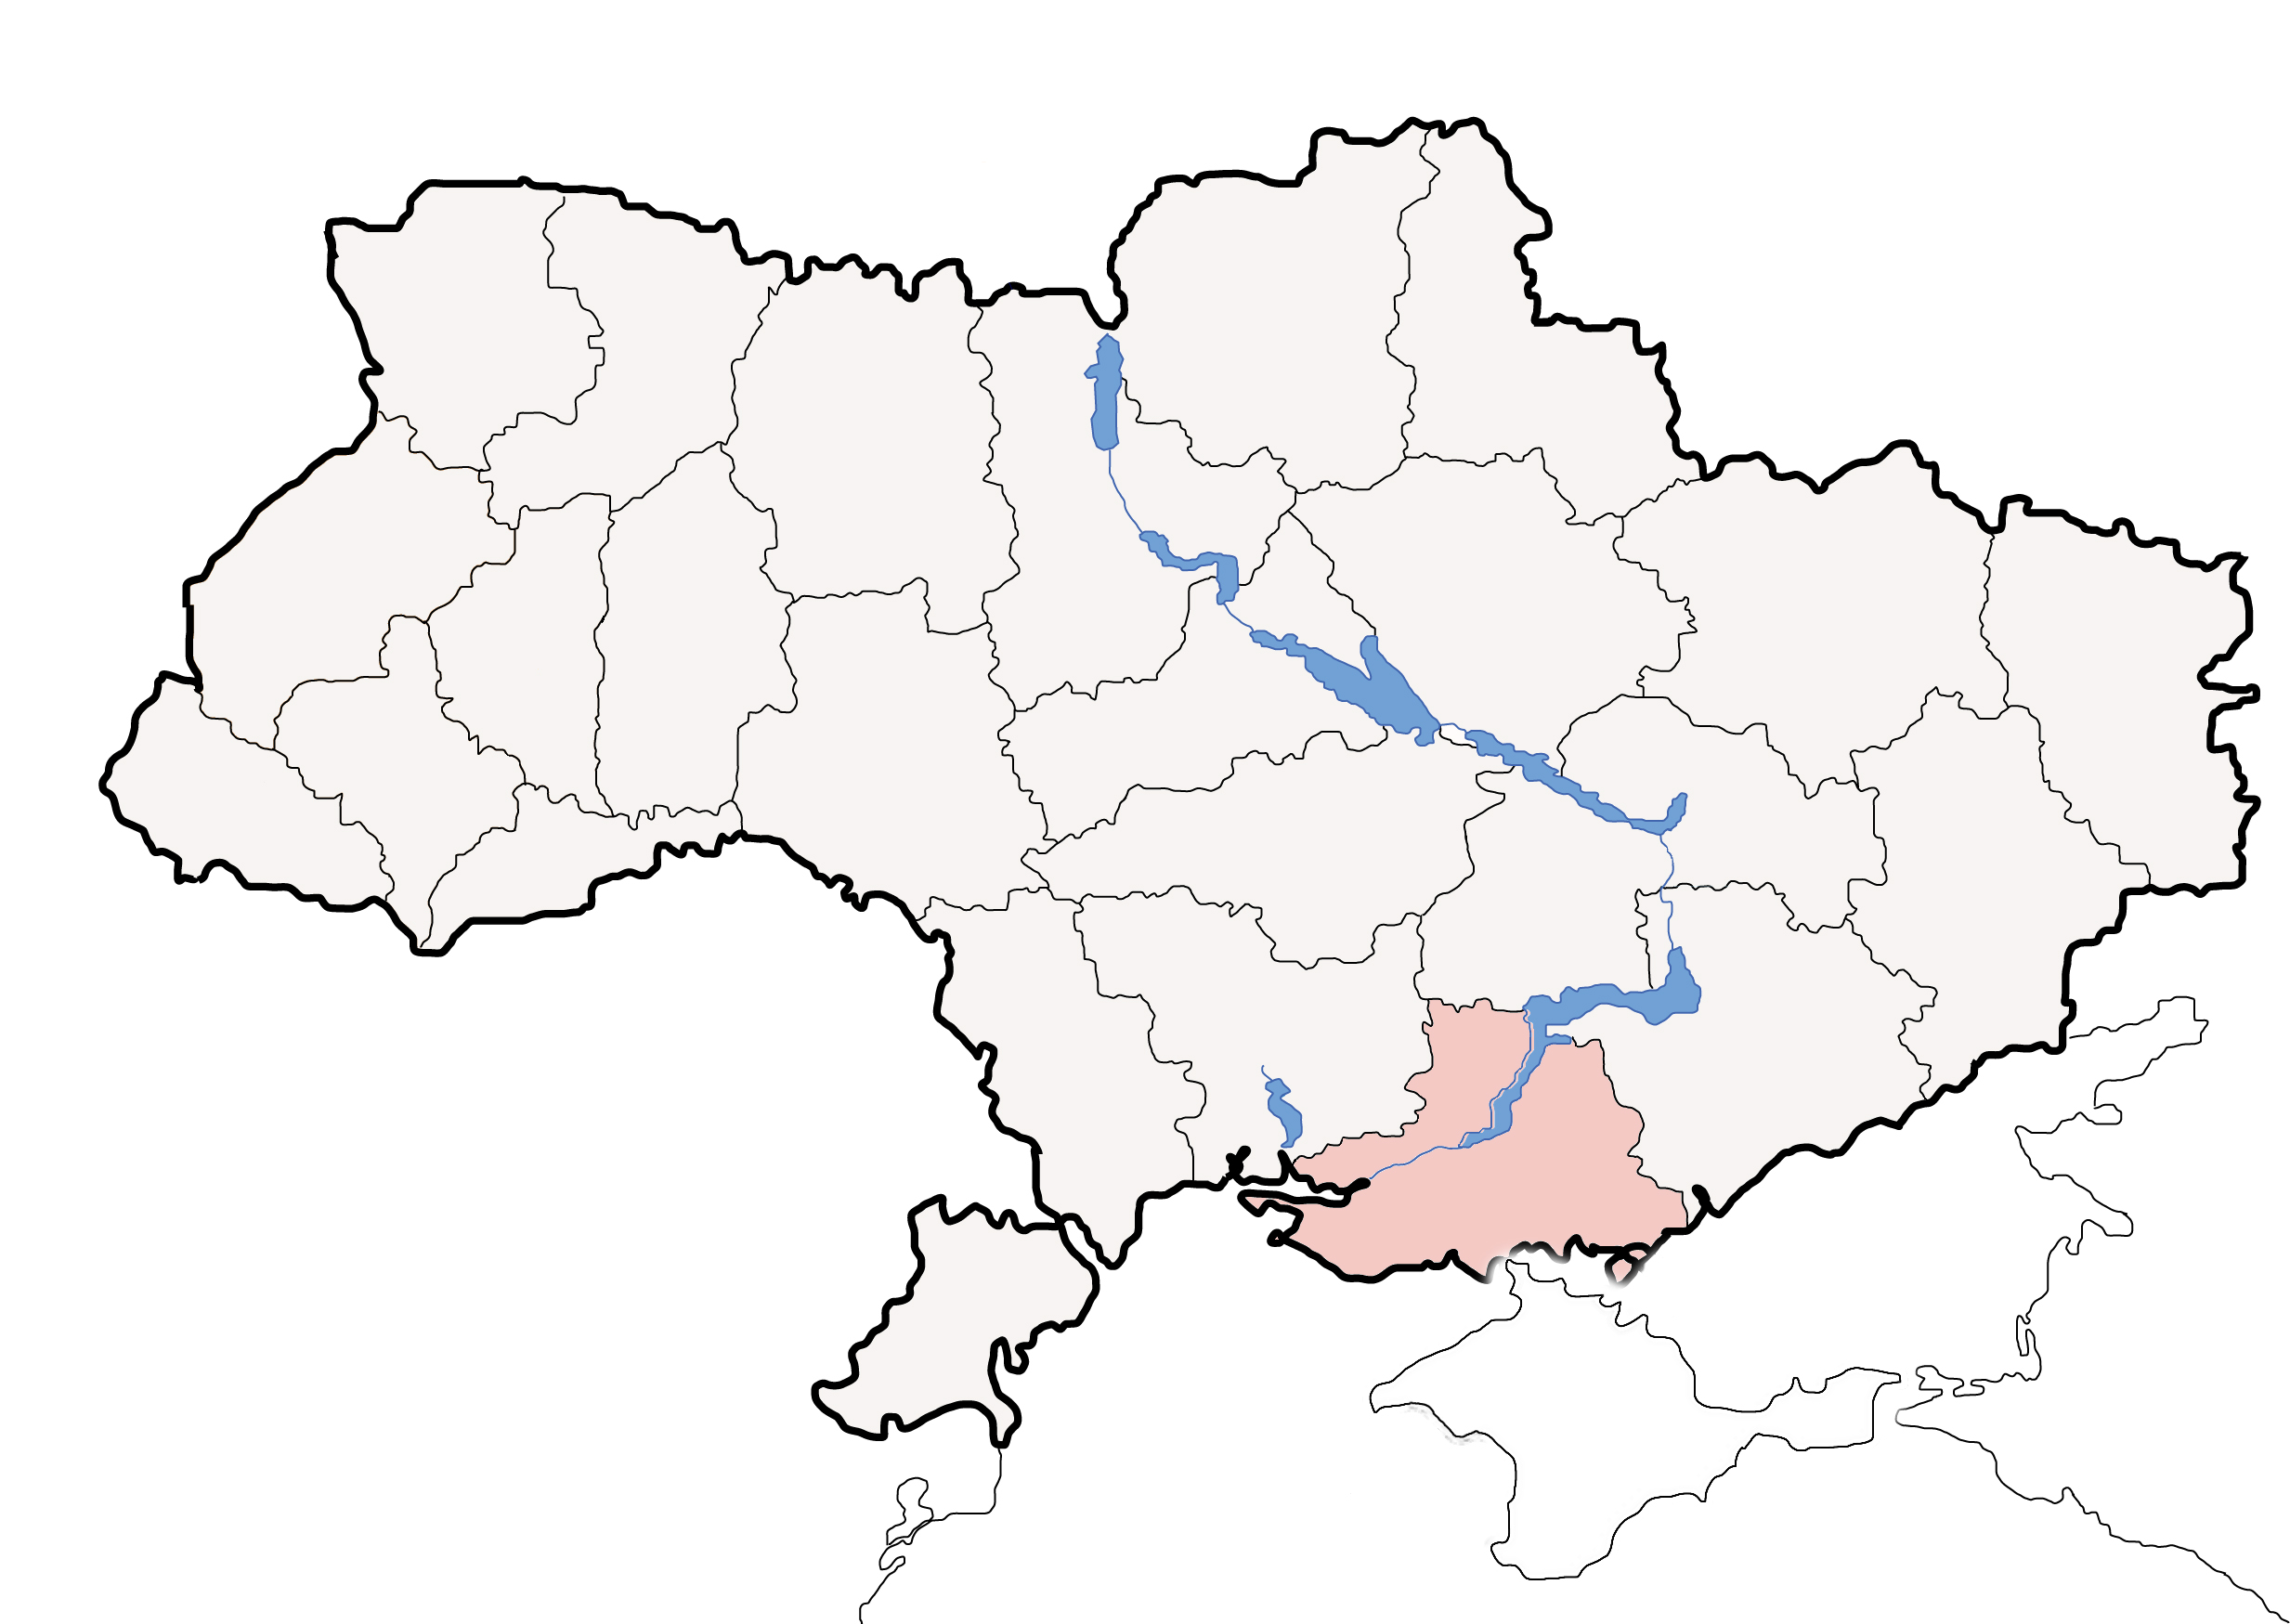 FileMap of Ukraine Oblast Chersonjpg  Wikimedia Commons